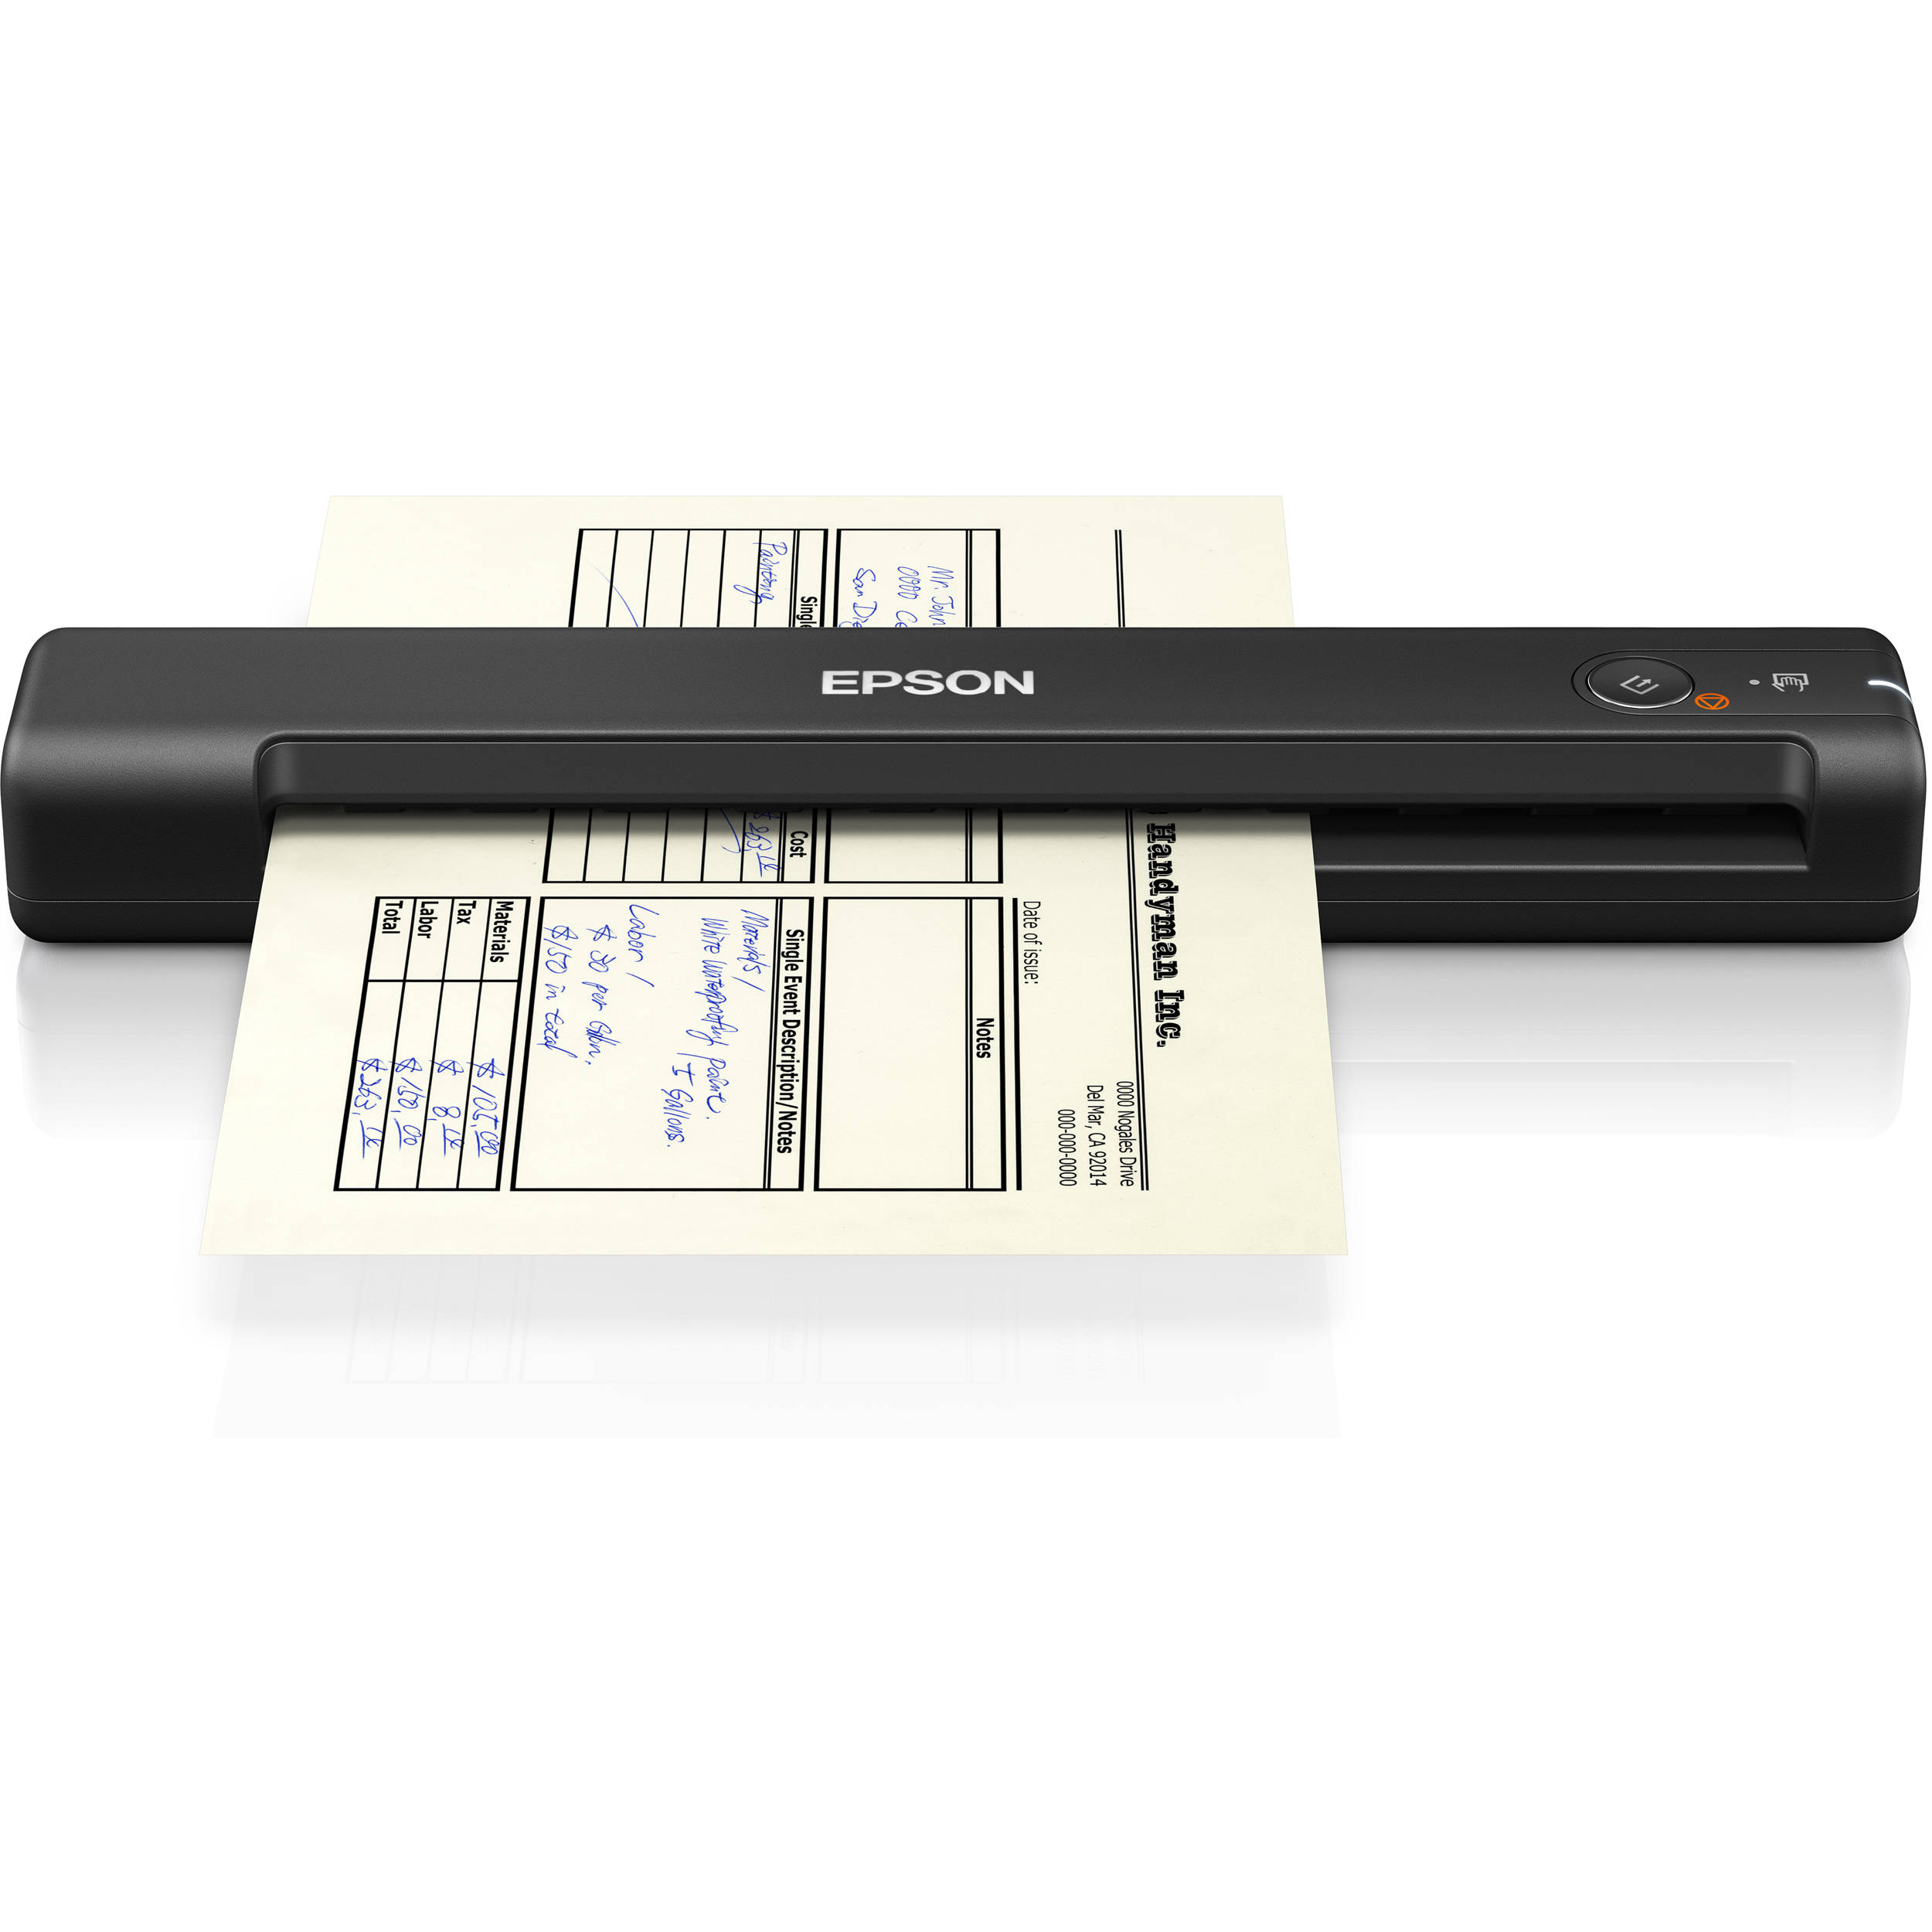 epson 550 scanner for document scanning